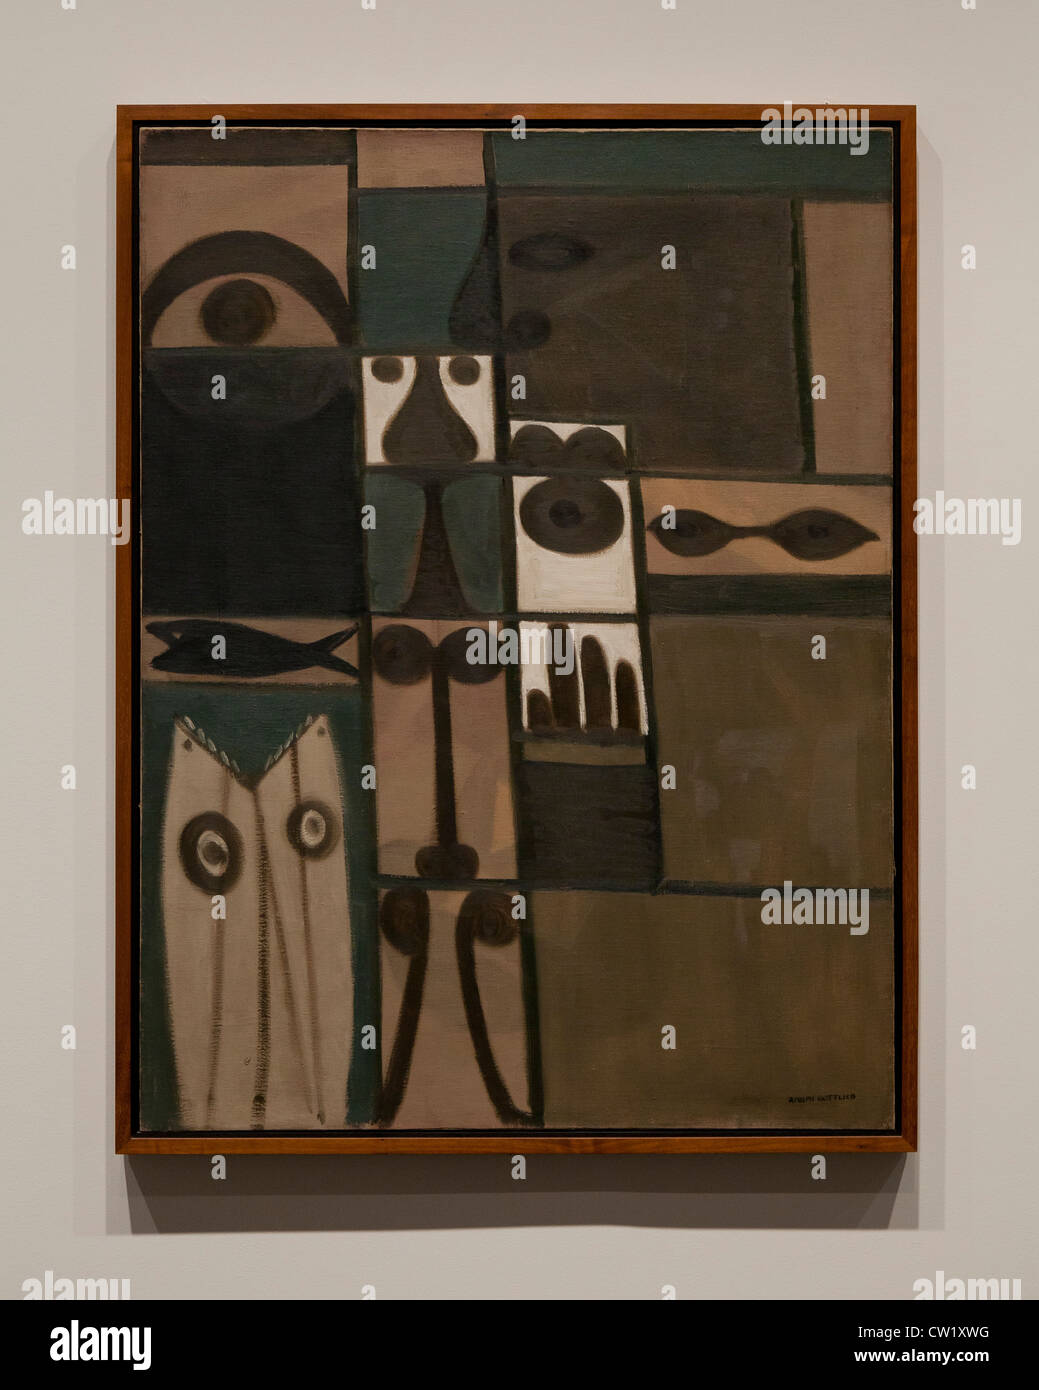 'Pictograph' by Adolph Gottlieb, 1942 - Stock Image